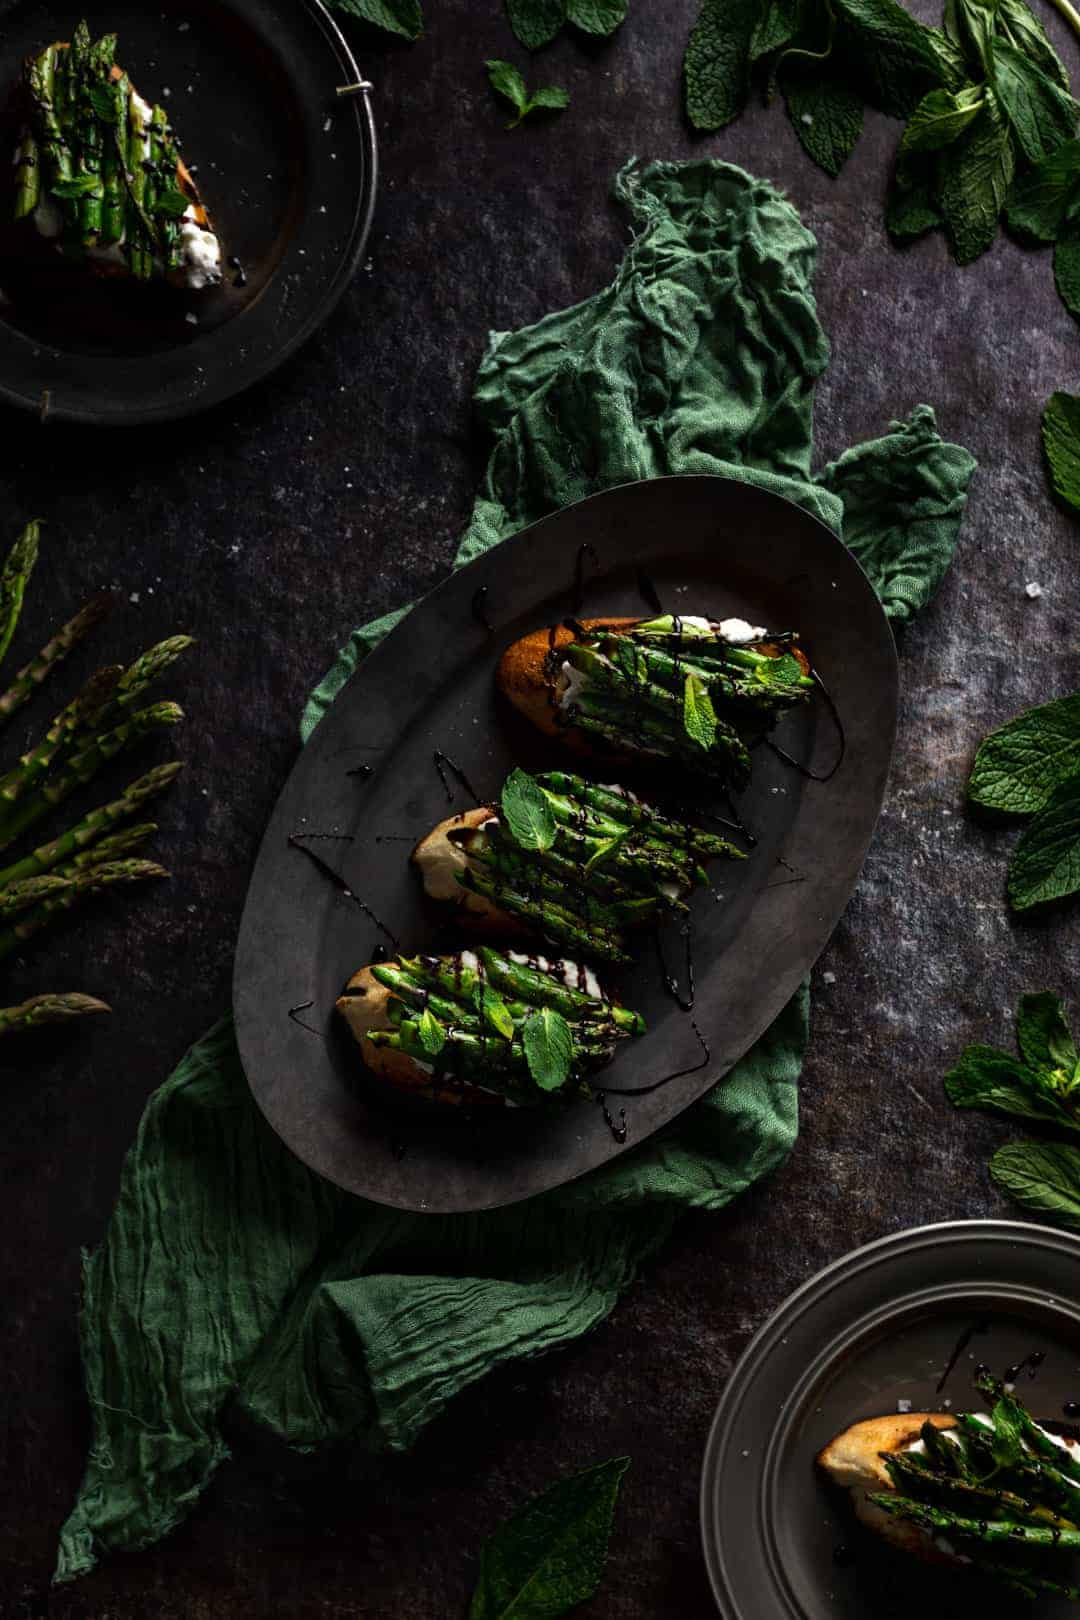 An oval tray on a green linen topped with 3 pieces of grilled asparagus and whipped ricotta toast. Two plates with additional toasts sup pound the platter with stalks of raw asparagus and fresh mint leaves